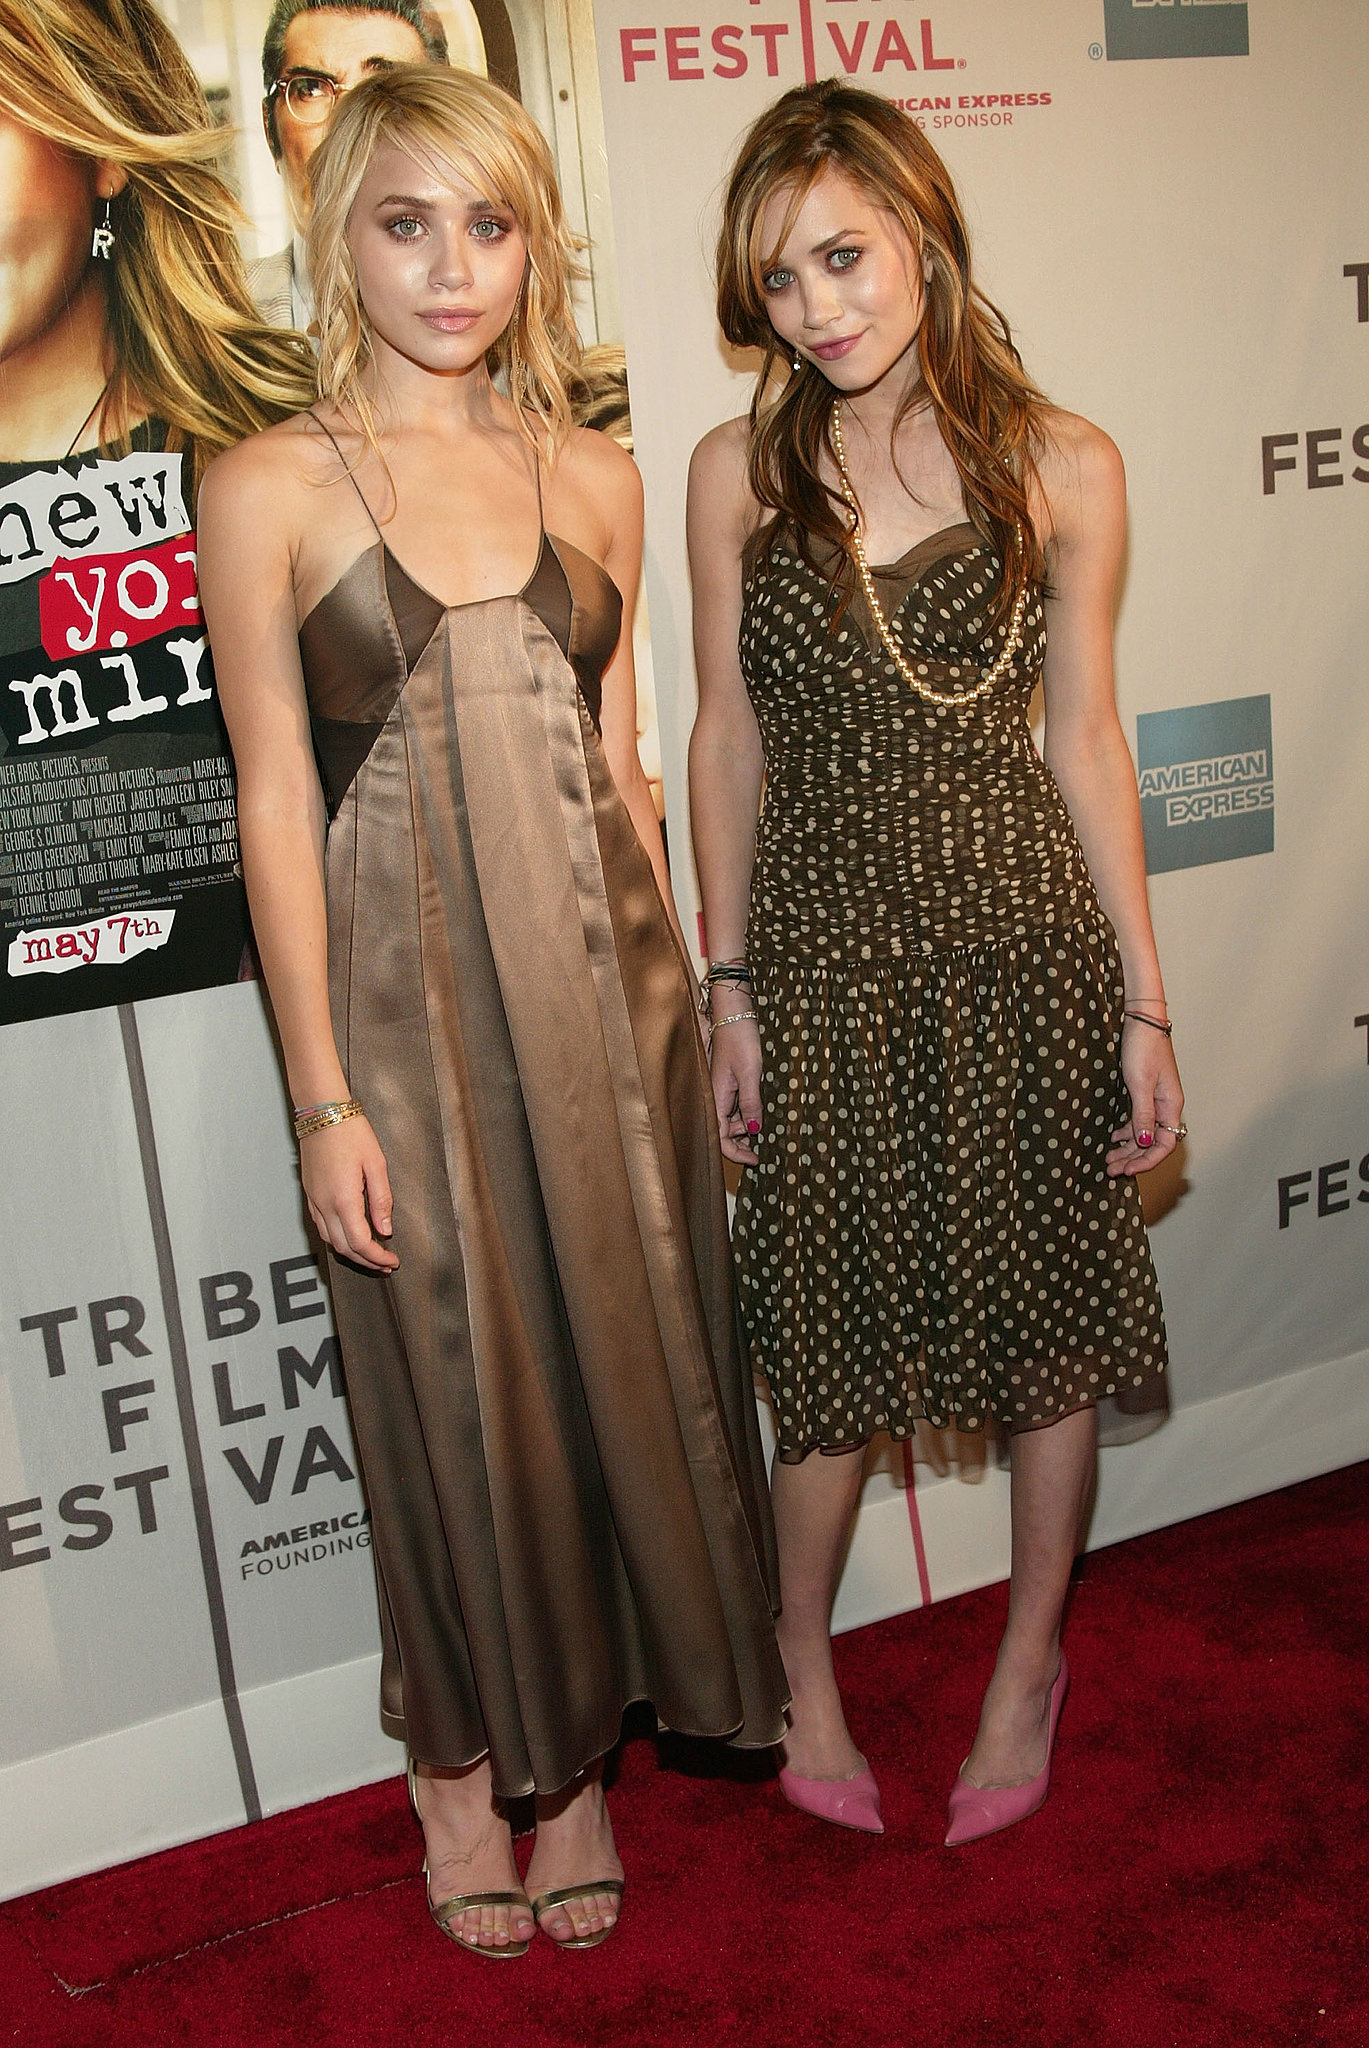 Twinning combo: For the NYC premiere of New York Minute, the leading ladies coordinated in earth tones and feminine fabrics.   Ashley went minimalistic in a silky bronze slip dress and two-strap sandals. Mary-Kate played with color and prints in a polka-dot chiffon confection and pink pointed pumps.